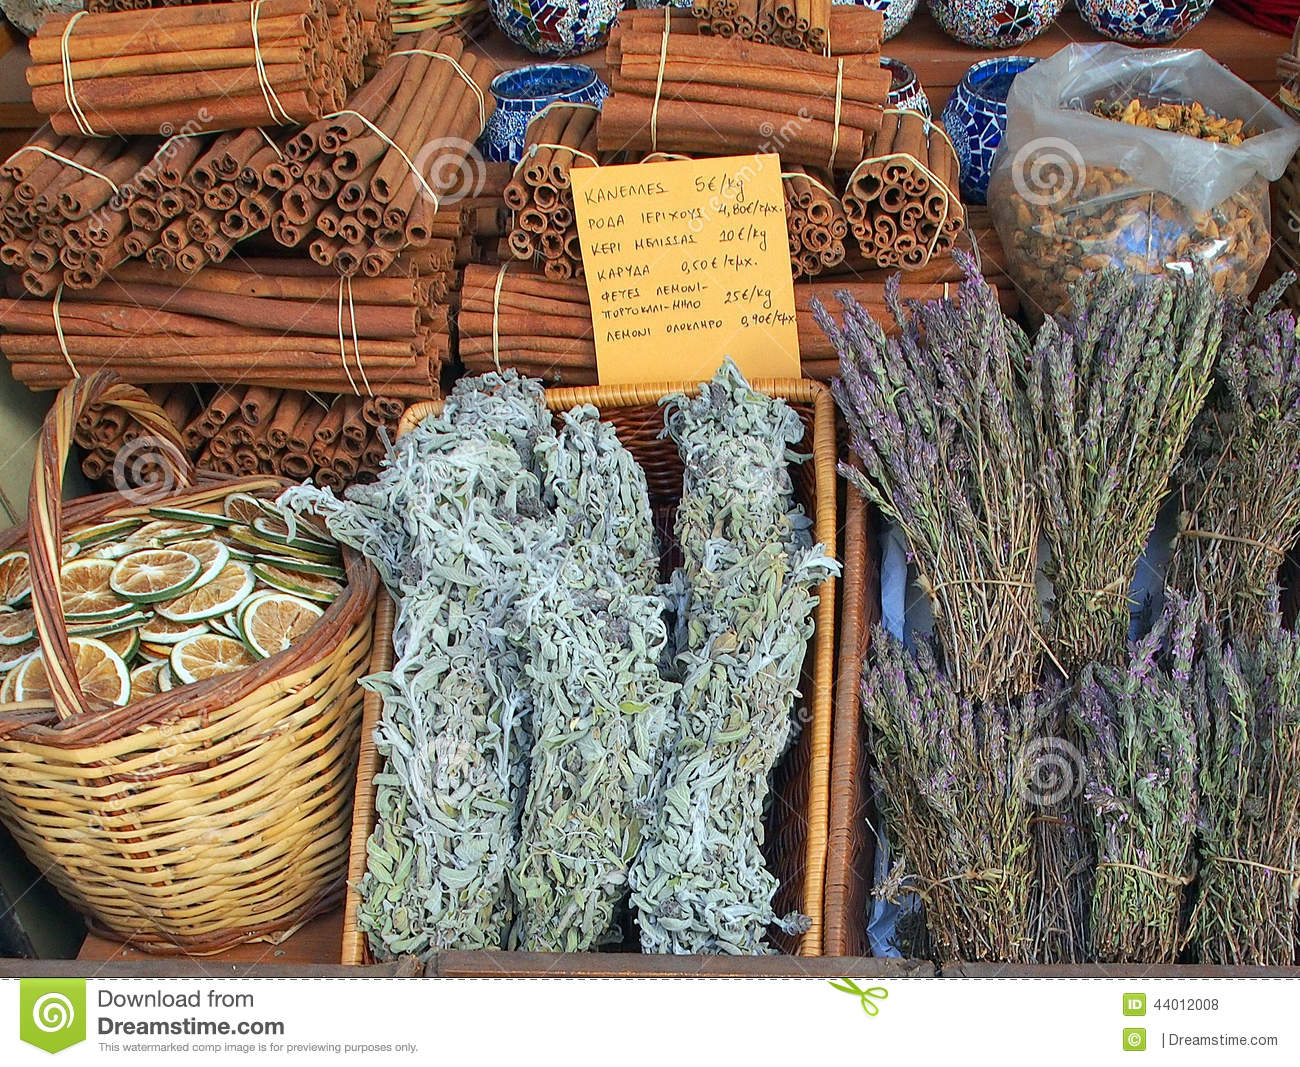 herbal market Stop in and you will find a wide variety of non-gmo, fair trade, gluten-free foods, organic produce, organic and natural foods, a bulk food section, bulk teas and herbs, natural pet supplies, and natural beauty care.